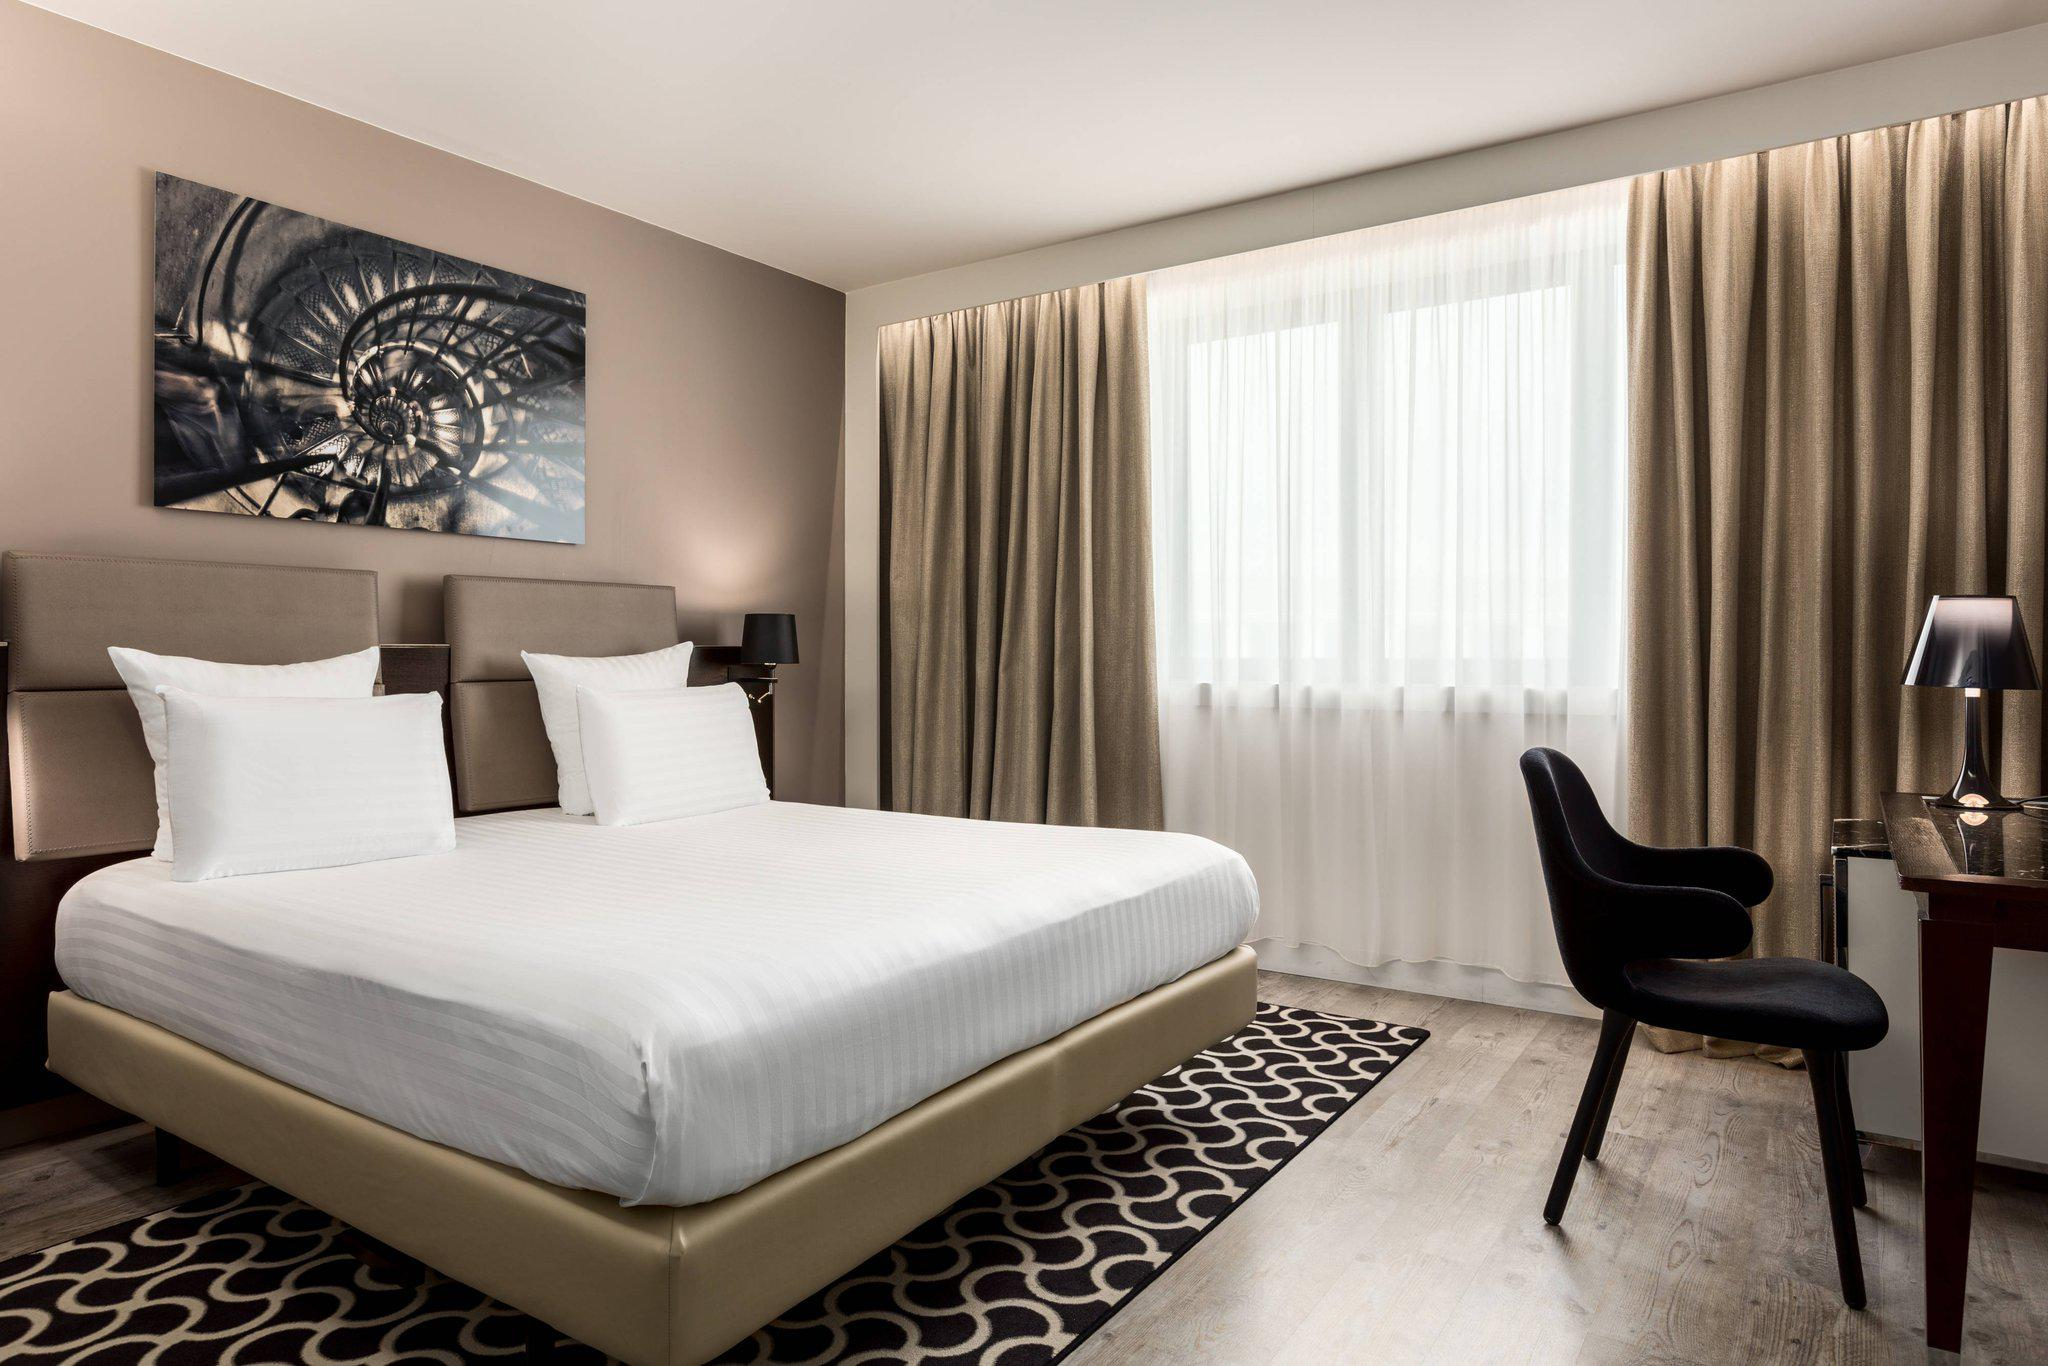 Images AC Hotel by Marriott Paris Porte Maillot